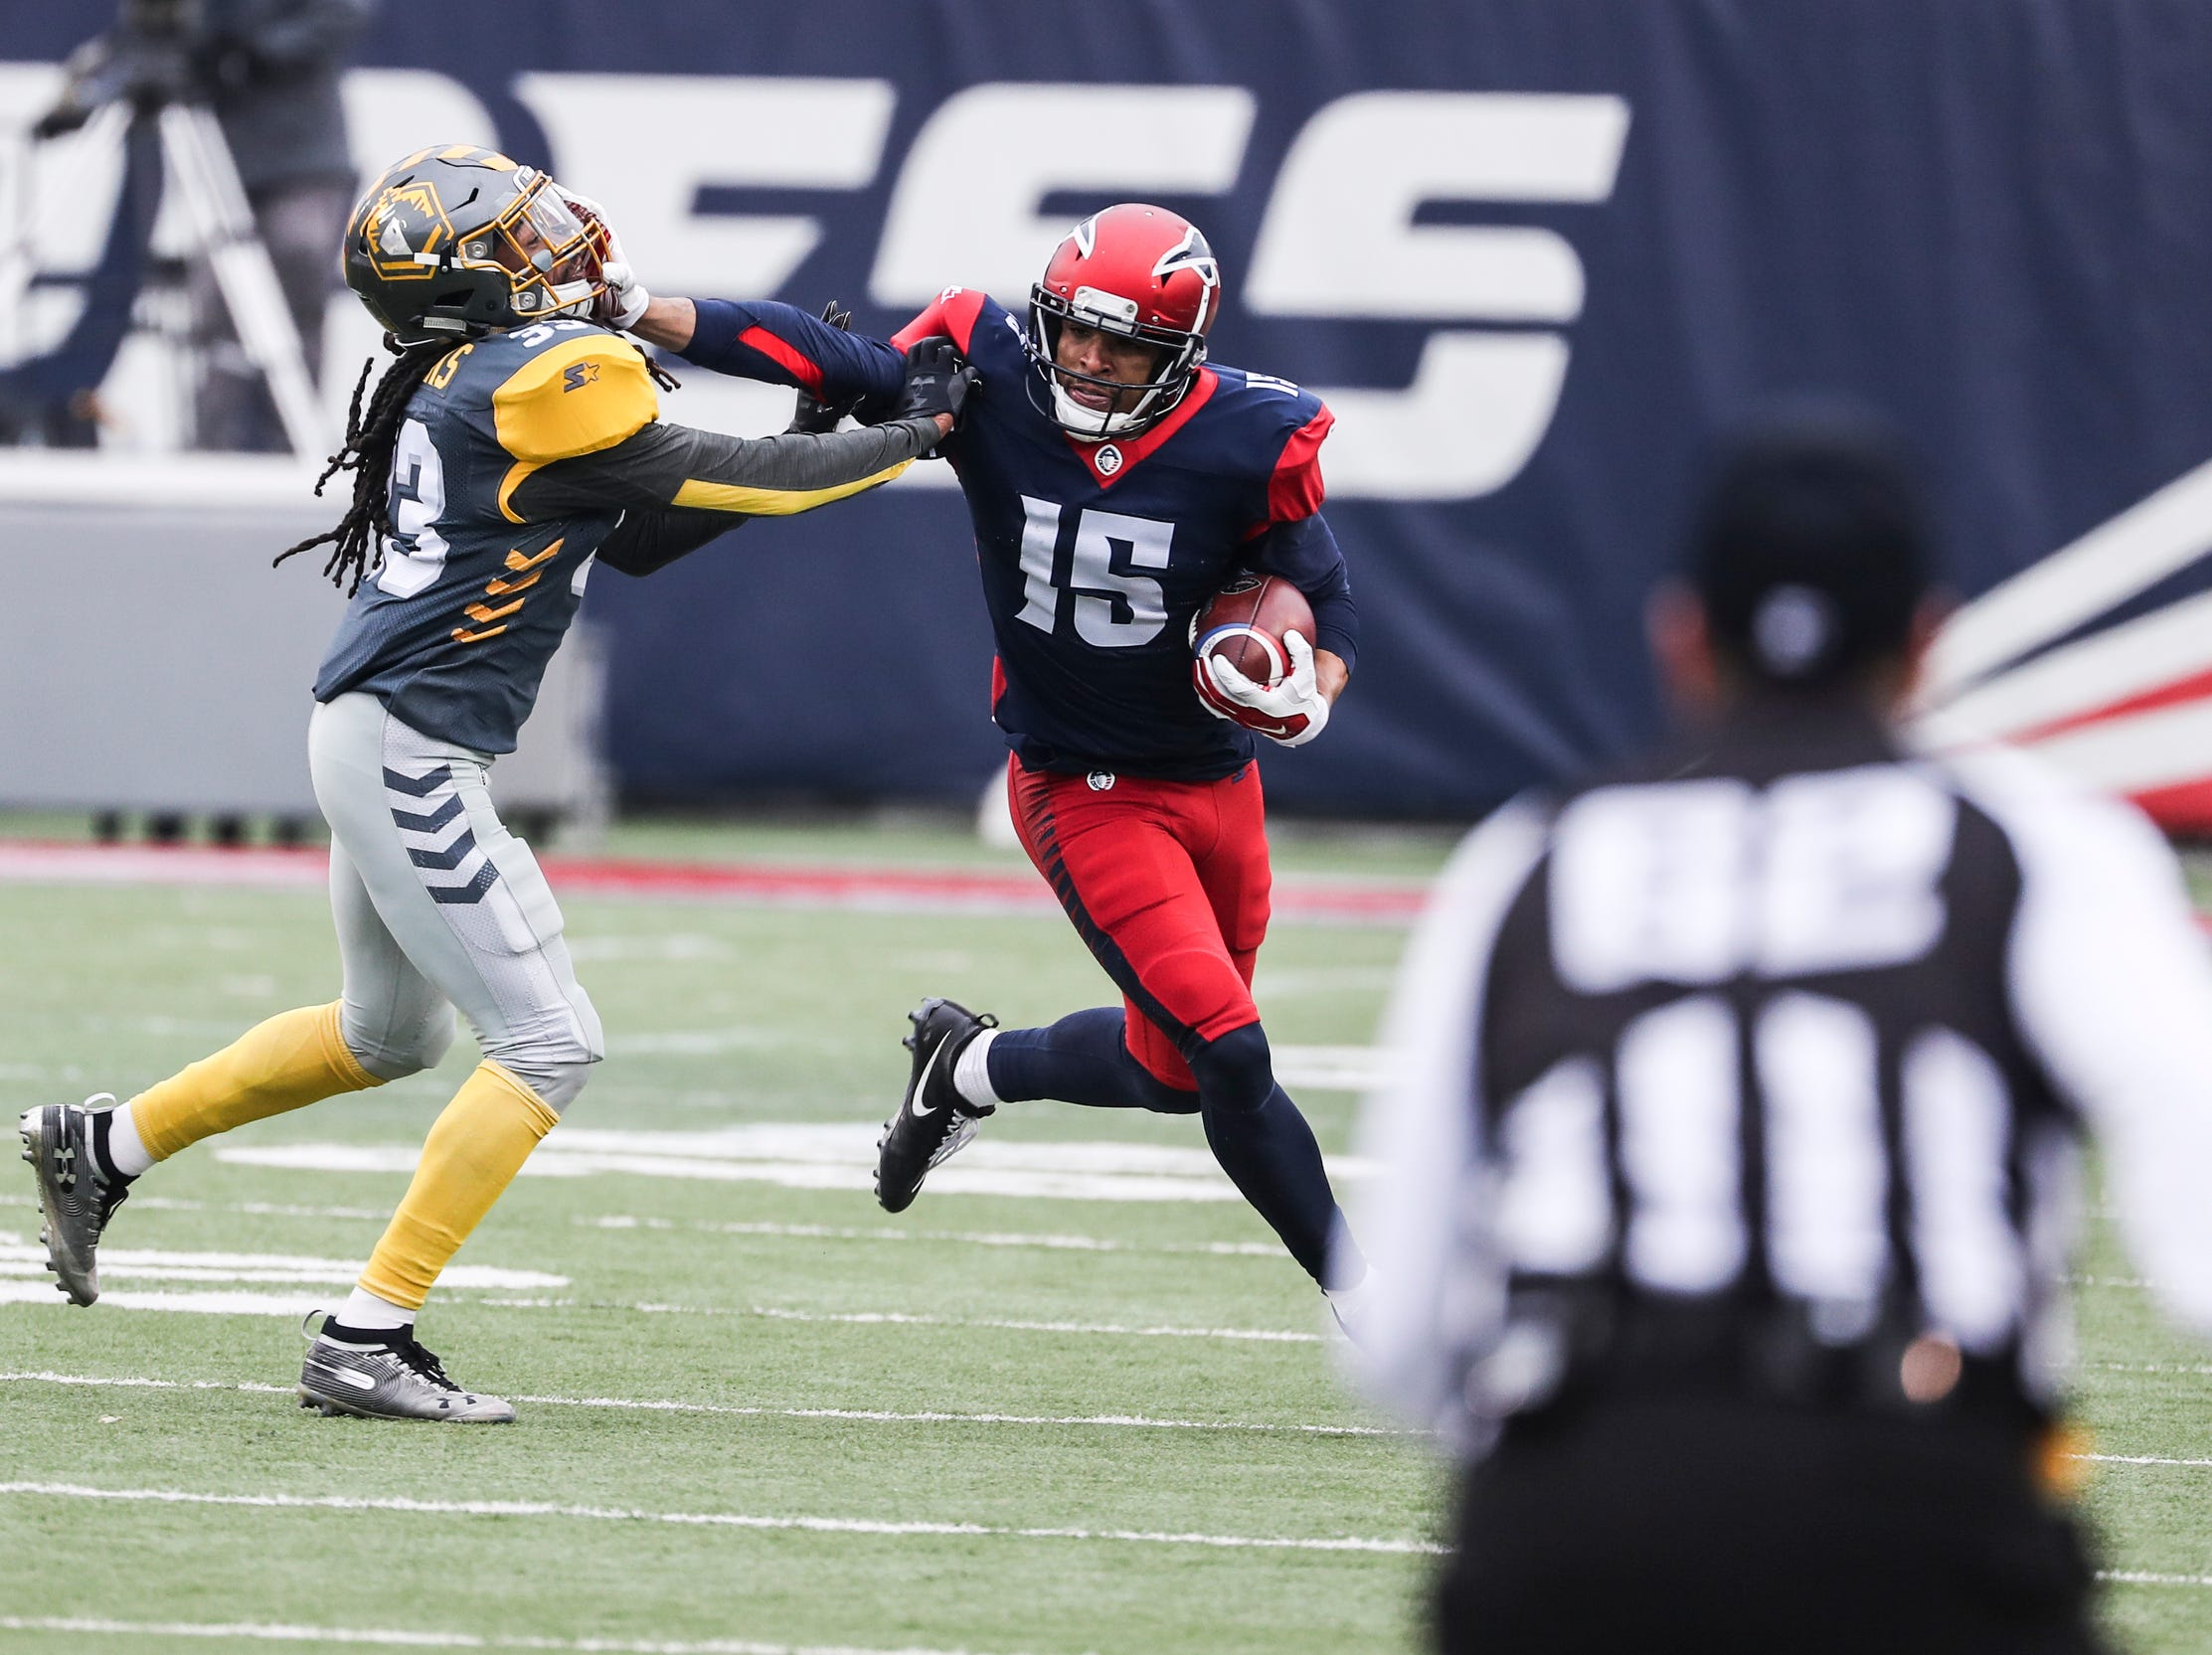 March 02, 2019 - Memphis Express' Devin Lucien attempts to outrun a defender during Saturday's game against the San Diego Fleet.